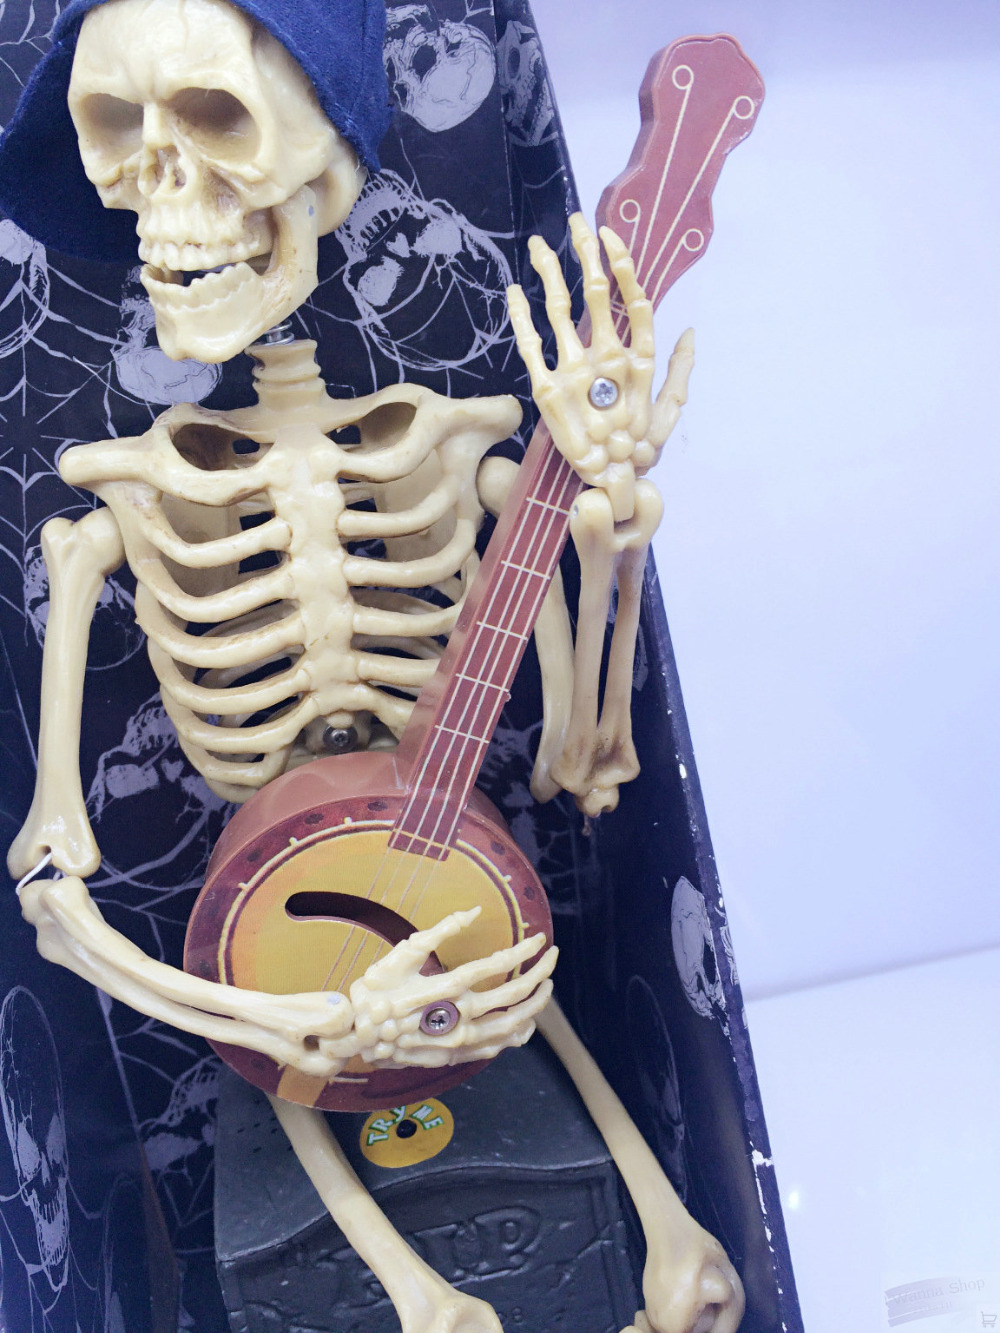 skeleton ghost play guitar with music halloween toy bar party kids